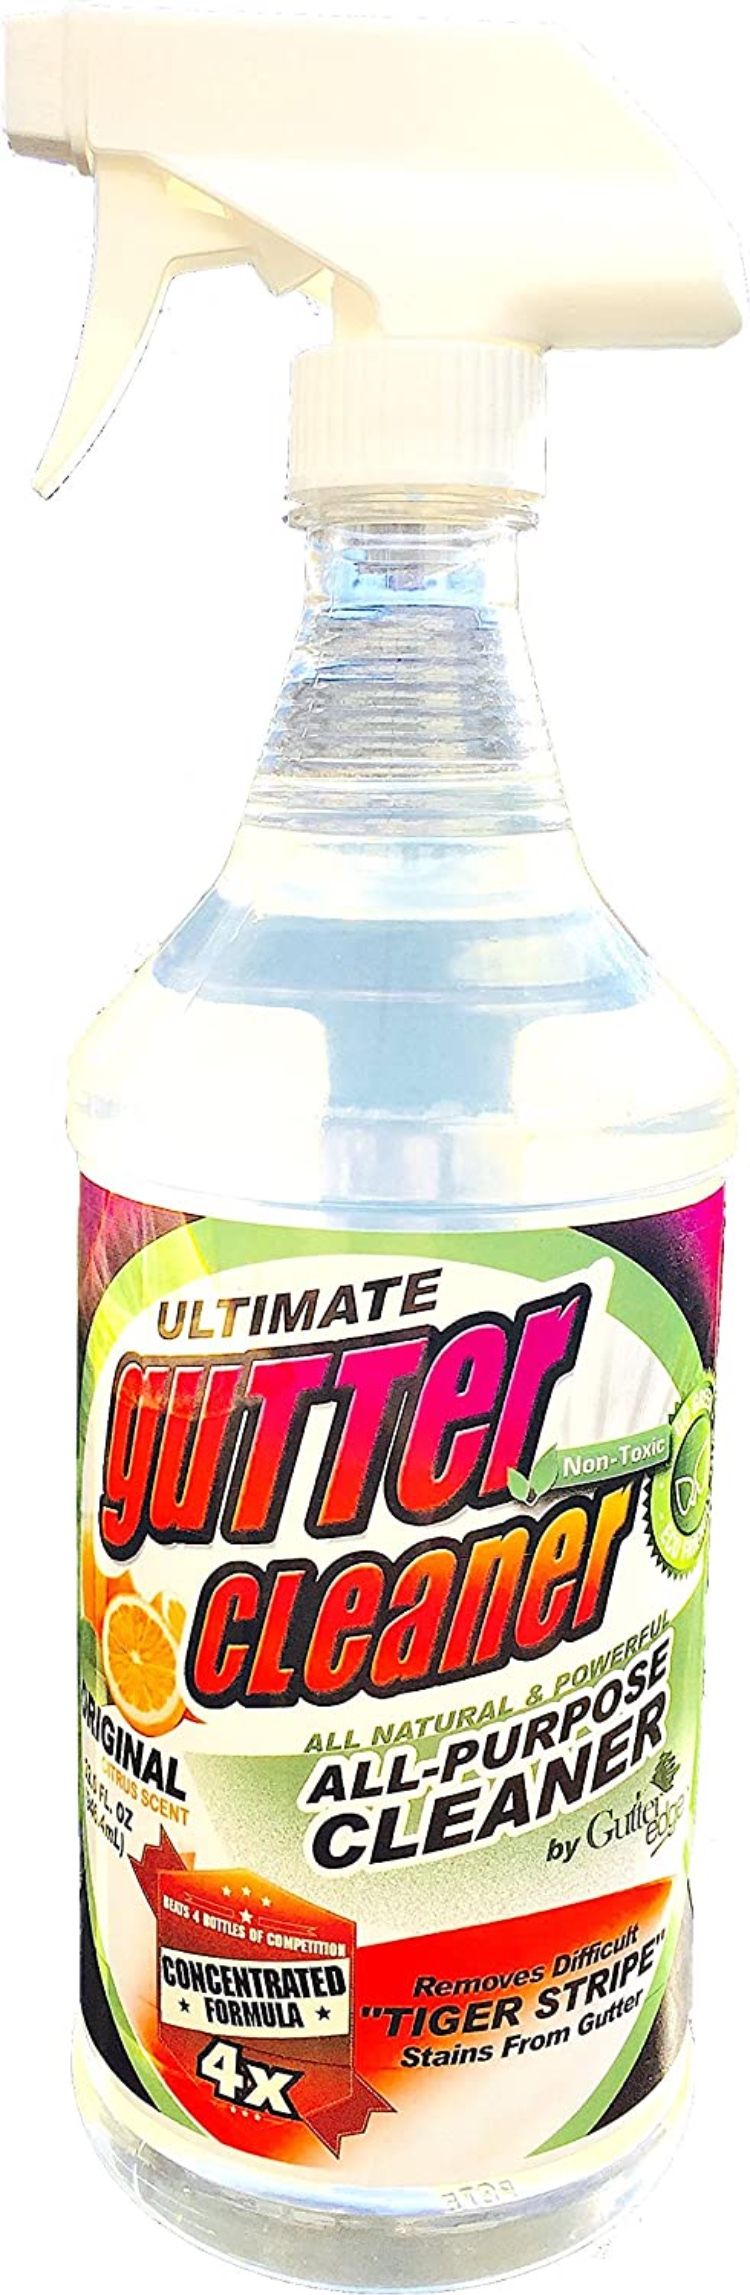 Ultimate Gutter Cleaner Gutter Stain Remover Citrus Scented 32 Ounces In 2020 Cleaning Gutters Gutter Cleaning Tool Gutter Cleaner